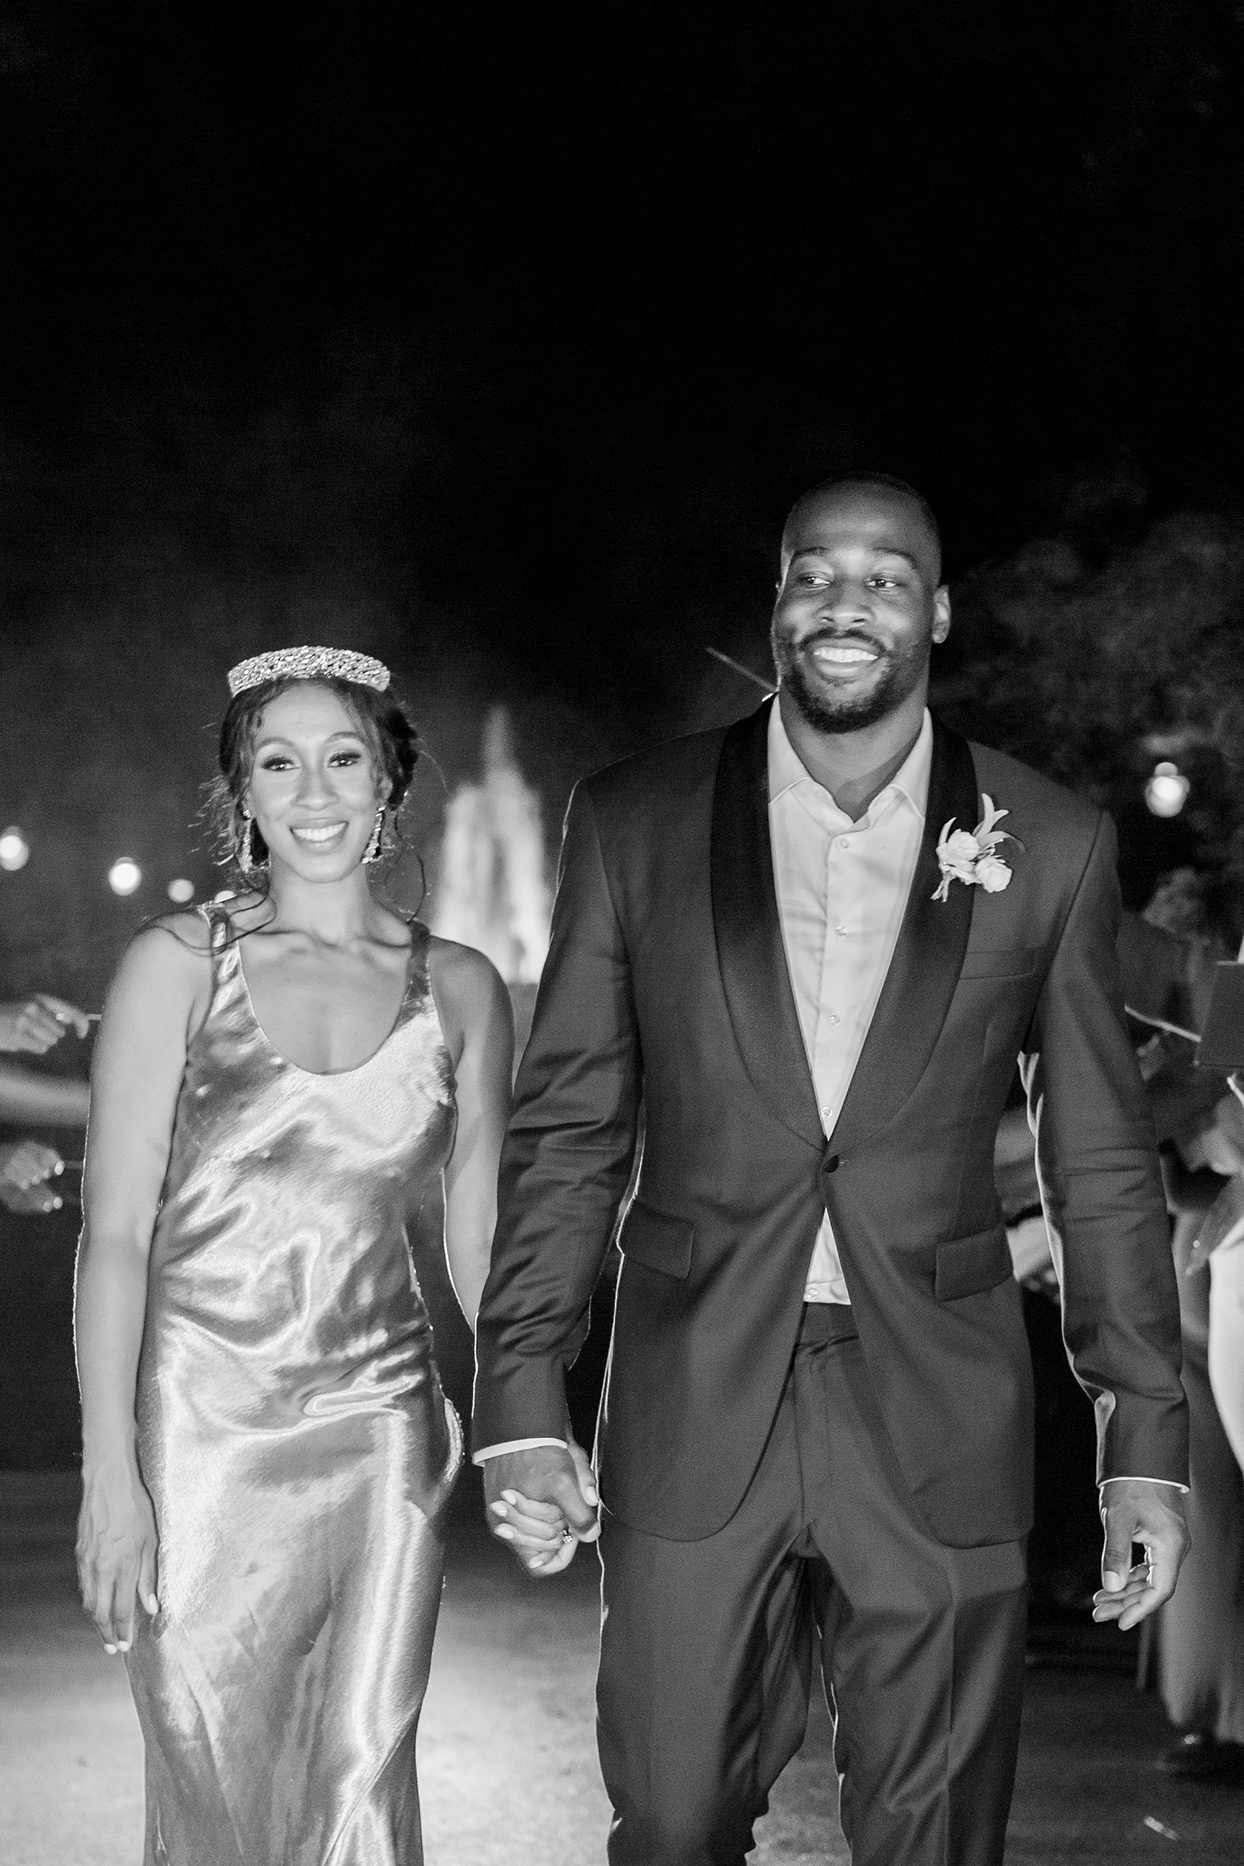 bride wearing gold satin slip gown holding hands with groom